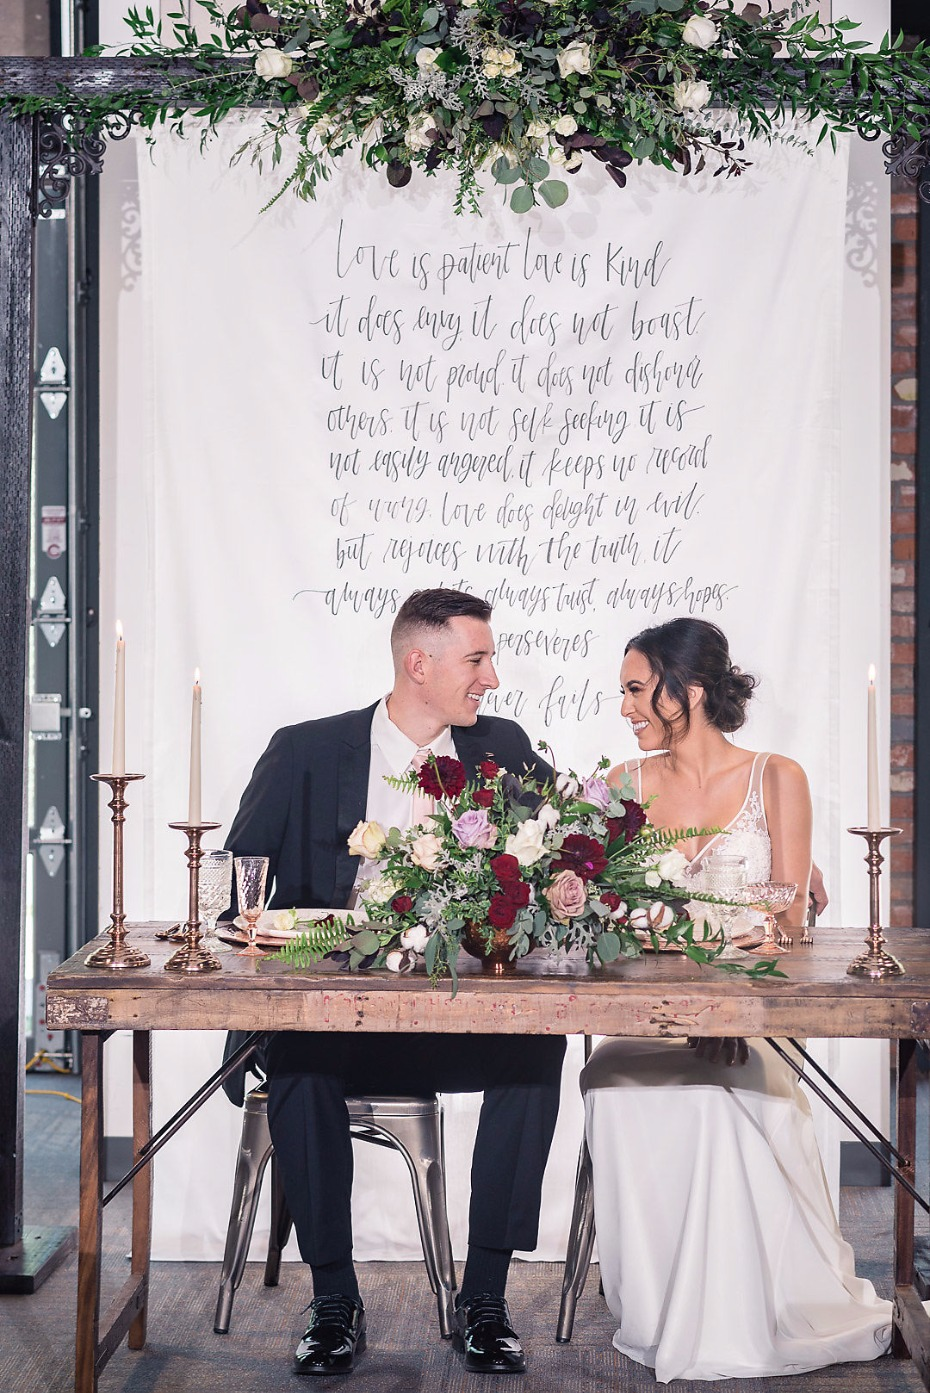 Gorgeous sweetheart table for two